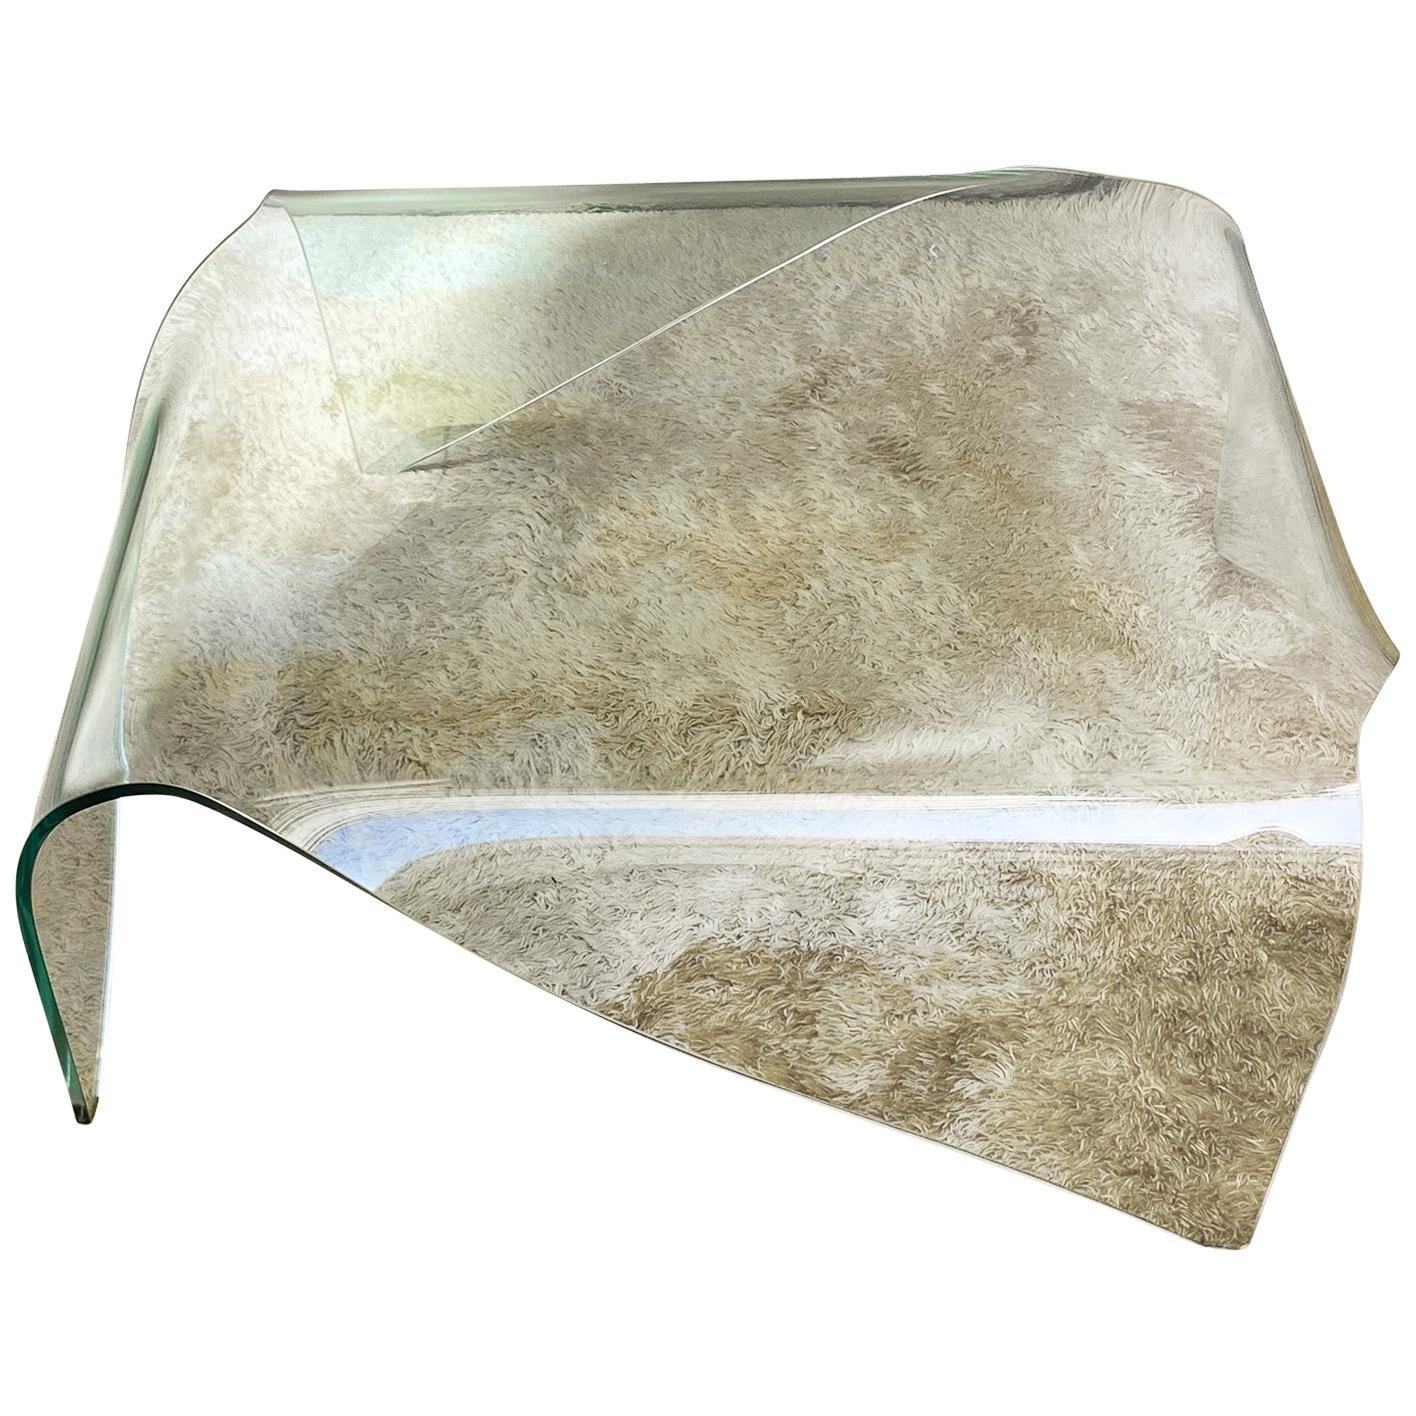 Italian Curved Glass Coffee Table Attributed to Fiam, 1970s